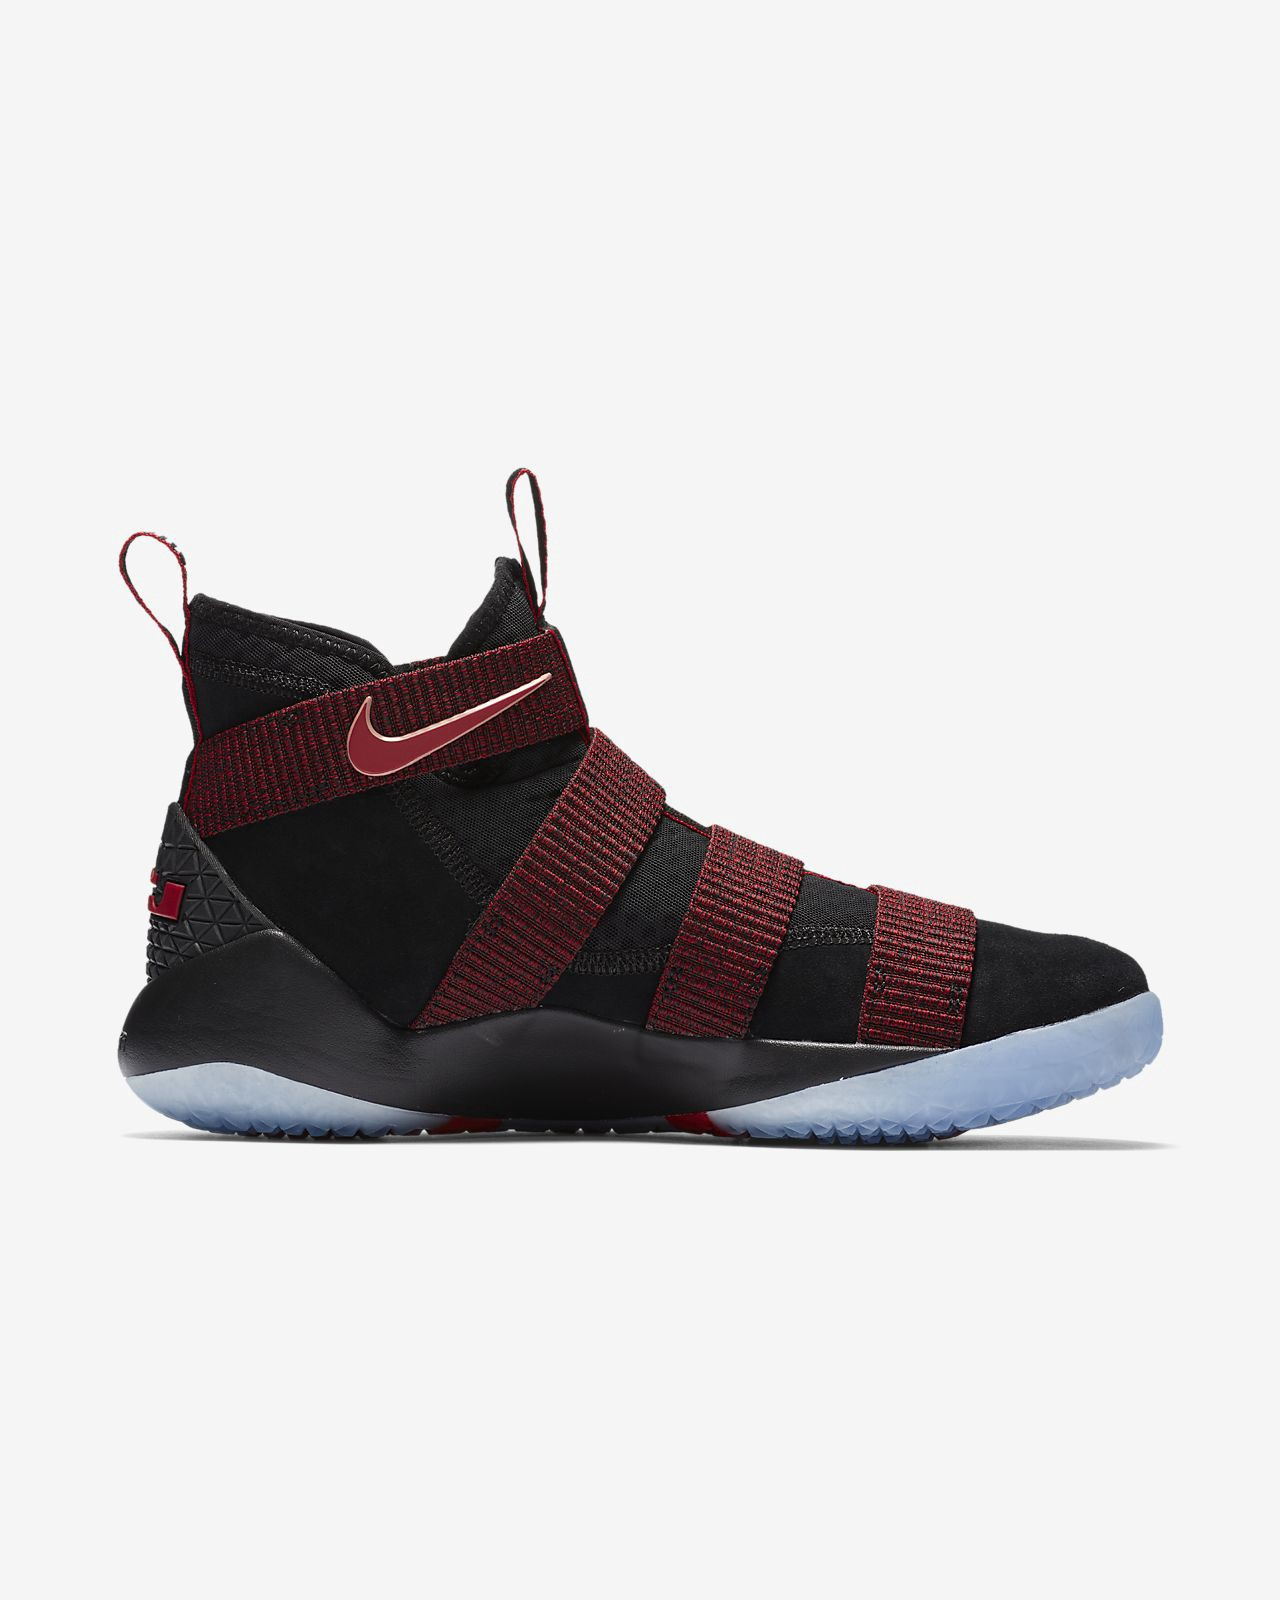 7955e716f1797 Nike Lebron Soldier Xi Basketball Shoe - M 12   W 13.5 Red ...